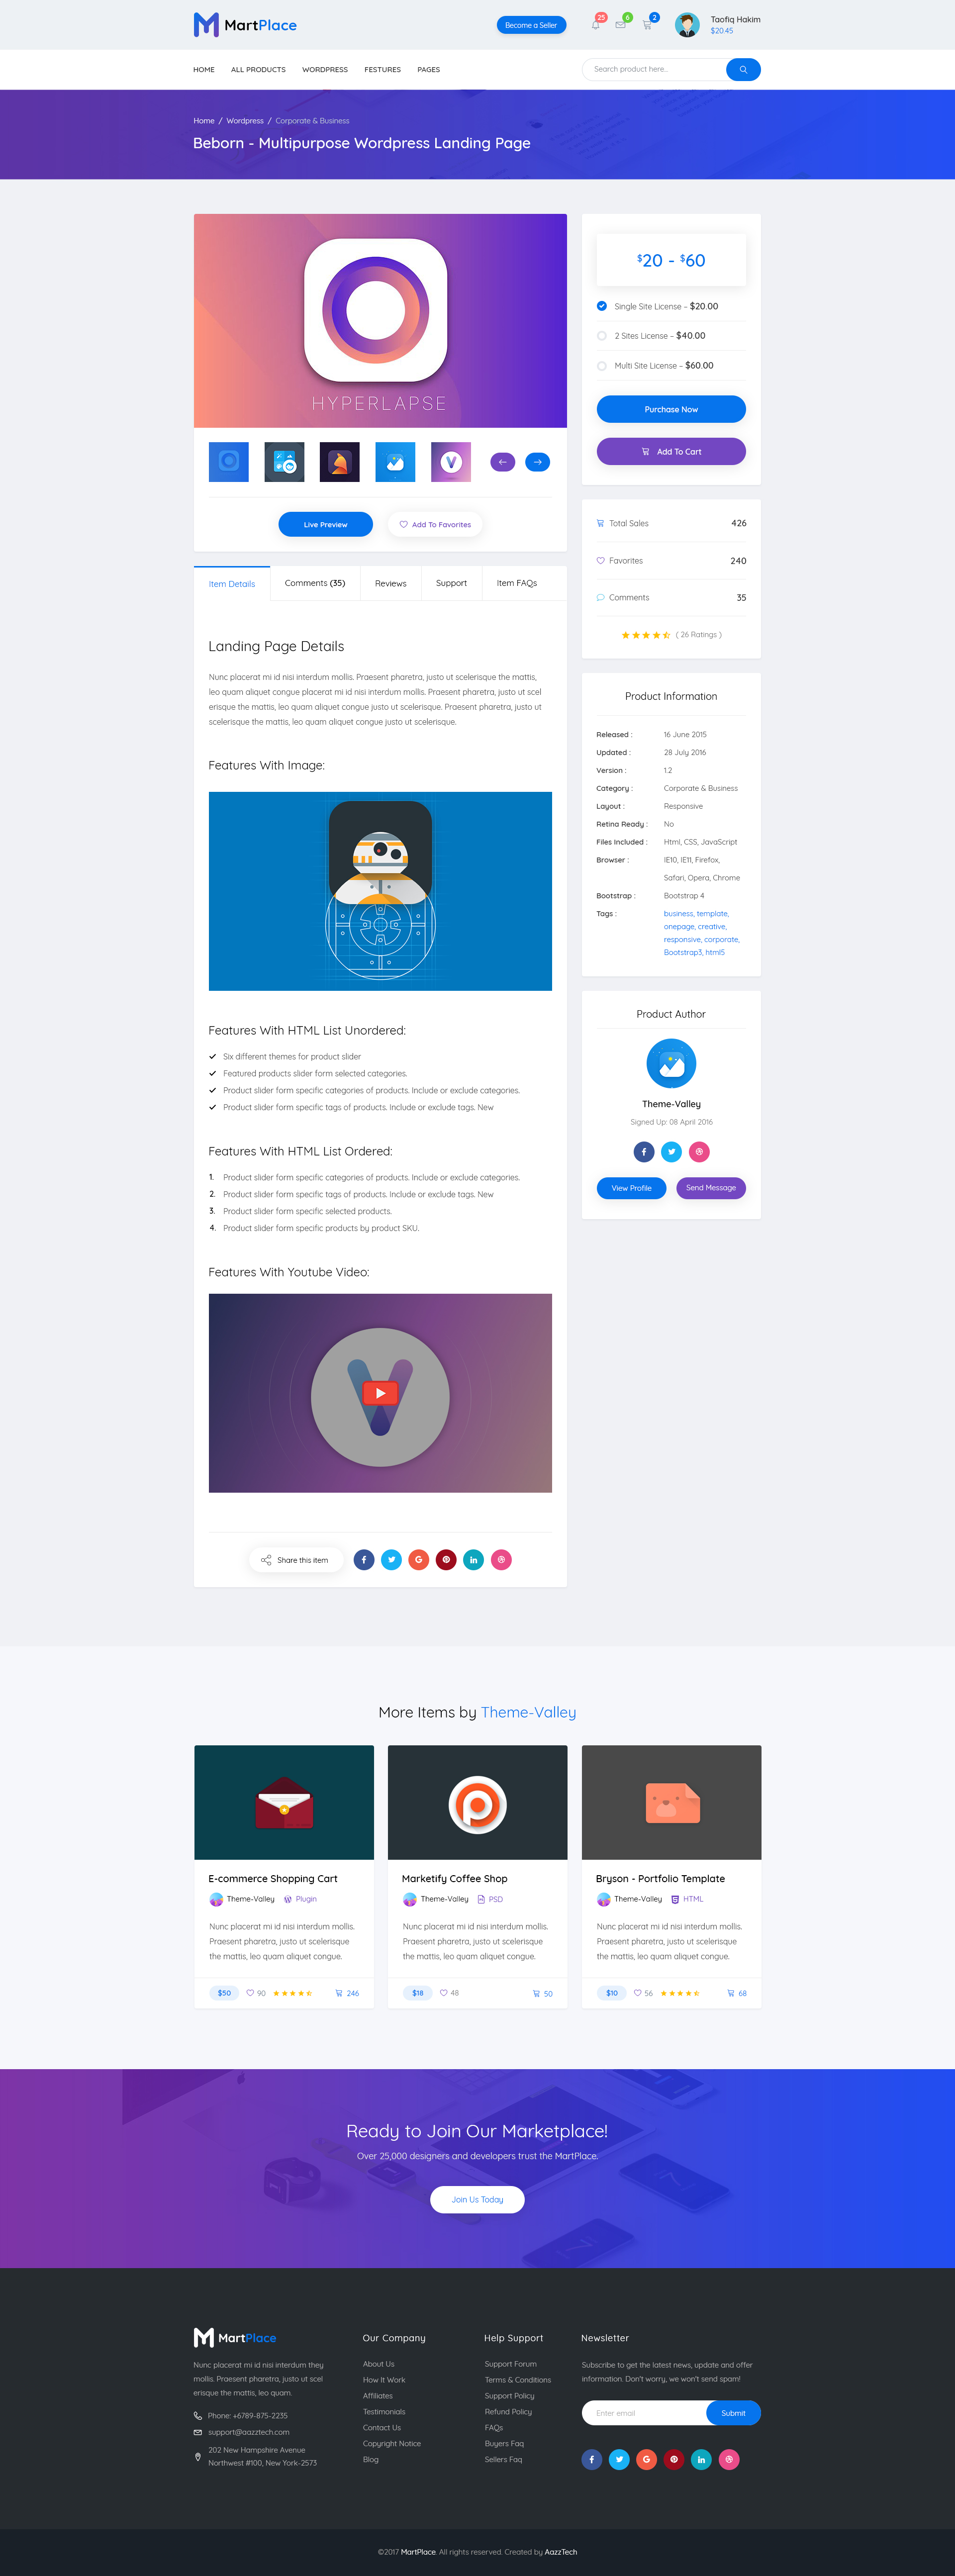 martplace complete online multipurpose marketplace psd template by